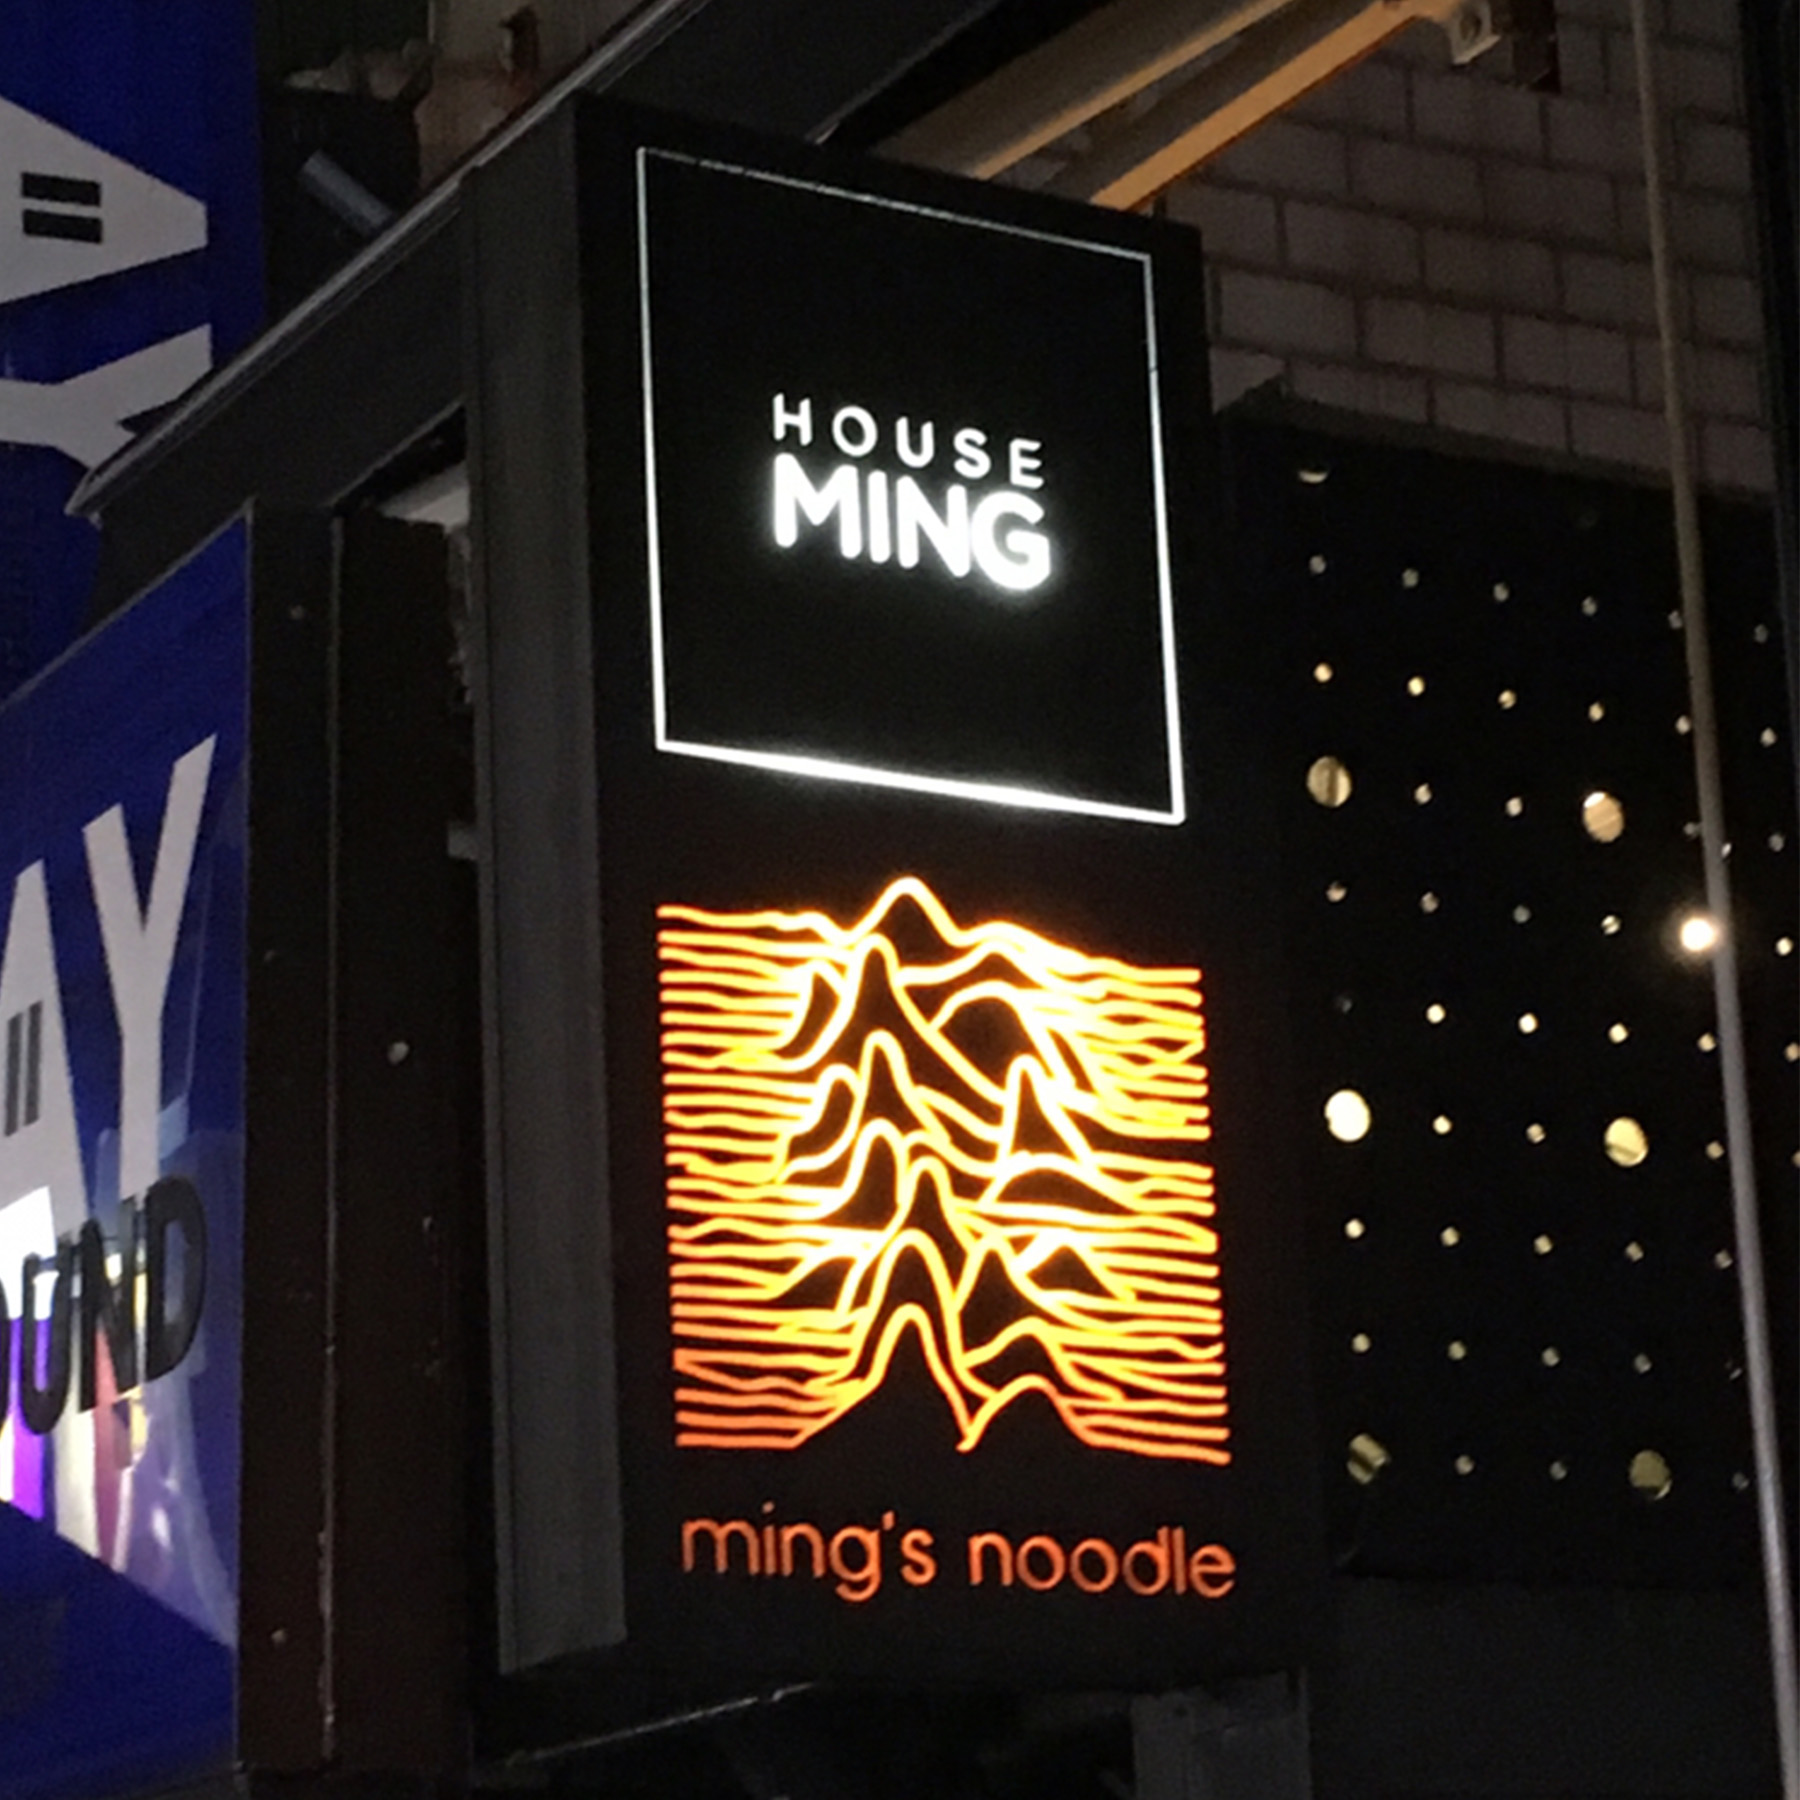 Finally, a noodle house inspired by Joy Division's seminal Unknown Pleasures album.